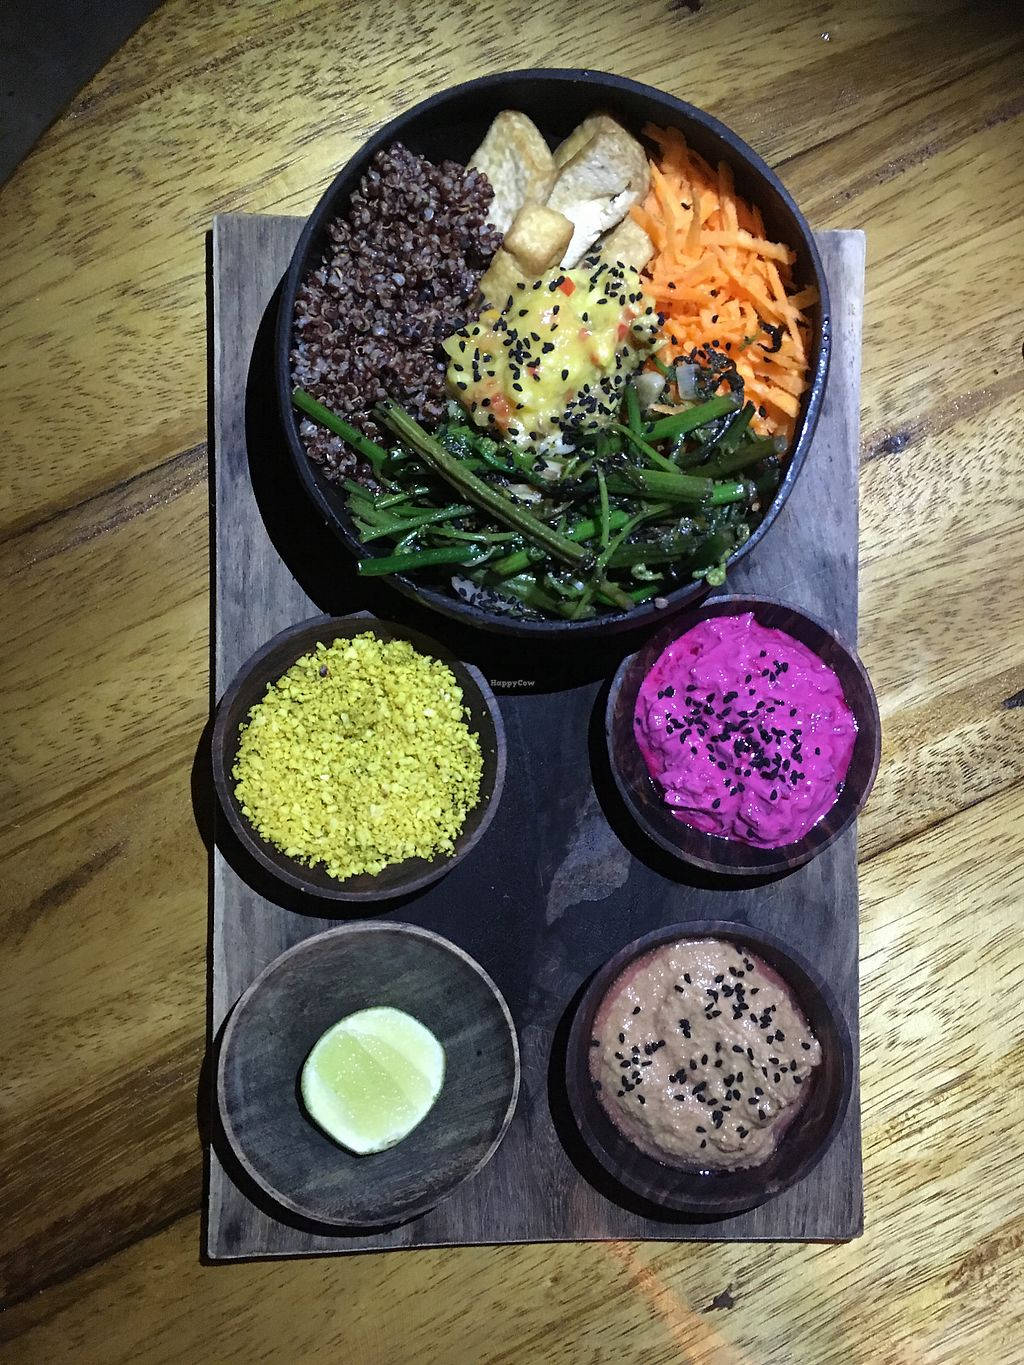 """Photo of Pachamama Organic  by <a href=""""/members/profile/IlonaGoossens"""">IlonaGoossens</a> <br/>Best meal on Gili!  <br/> April 21, 2018  - <a href='/contact/abuse/image/70951/388934'>Report</a>"""